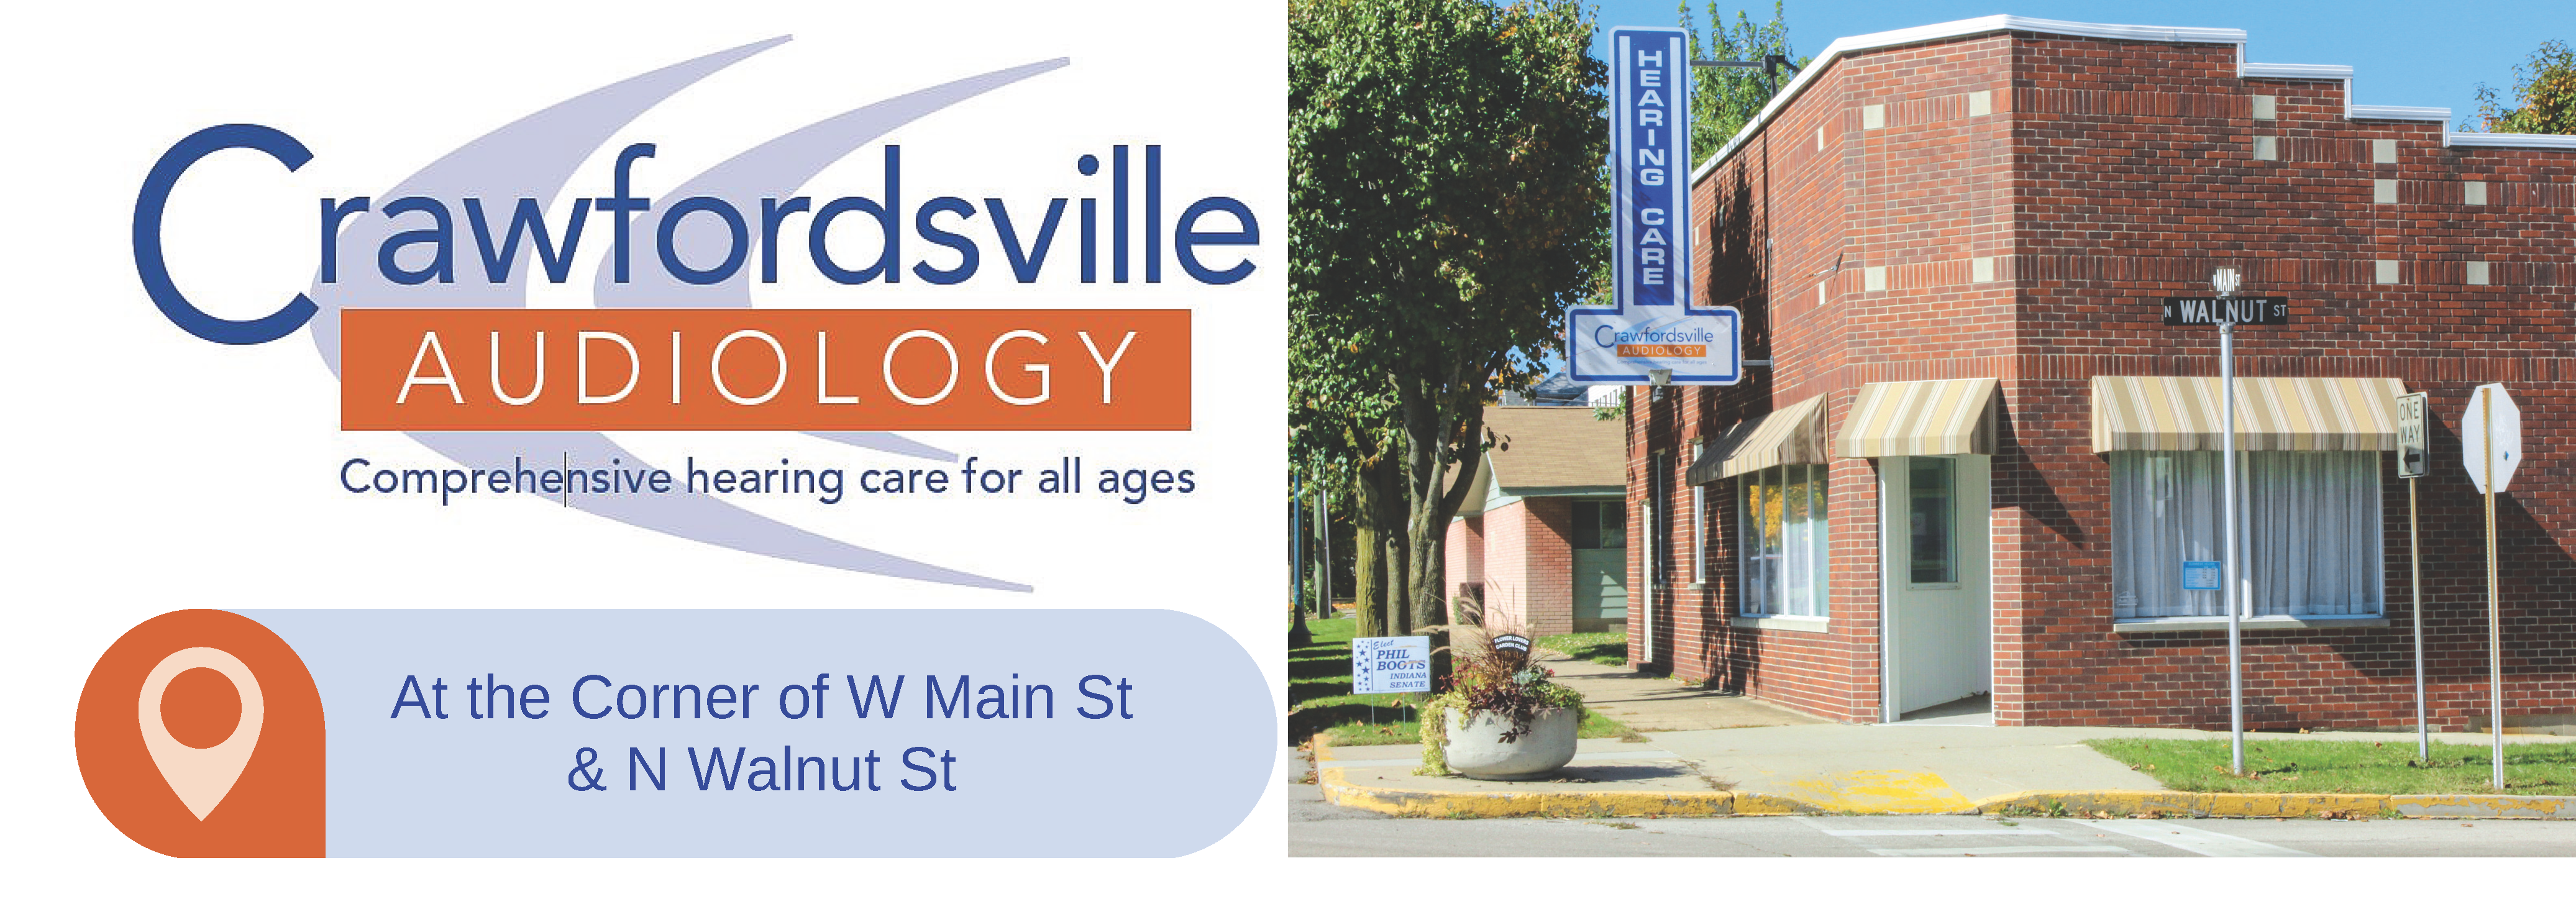 crawfordsville audiology